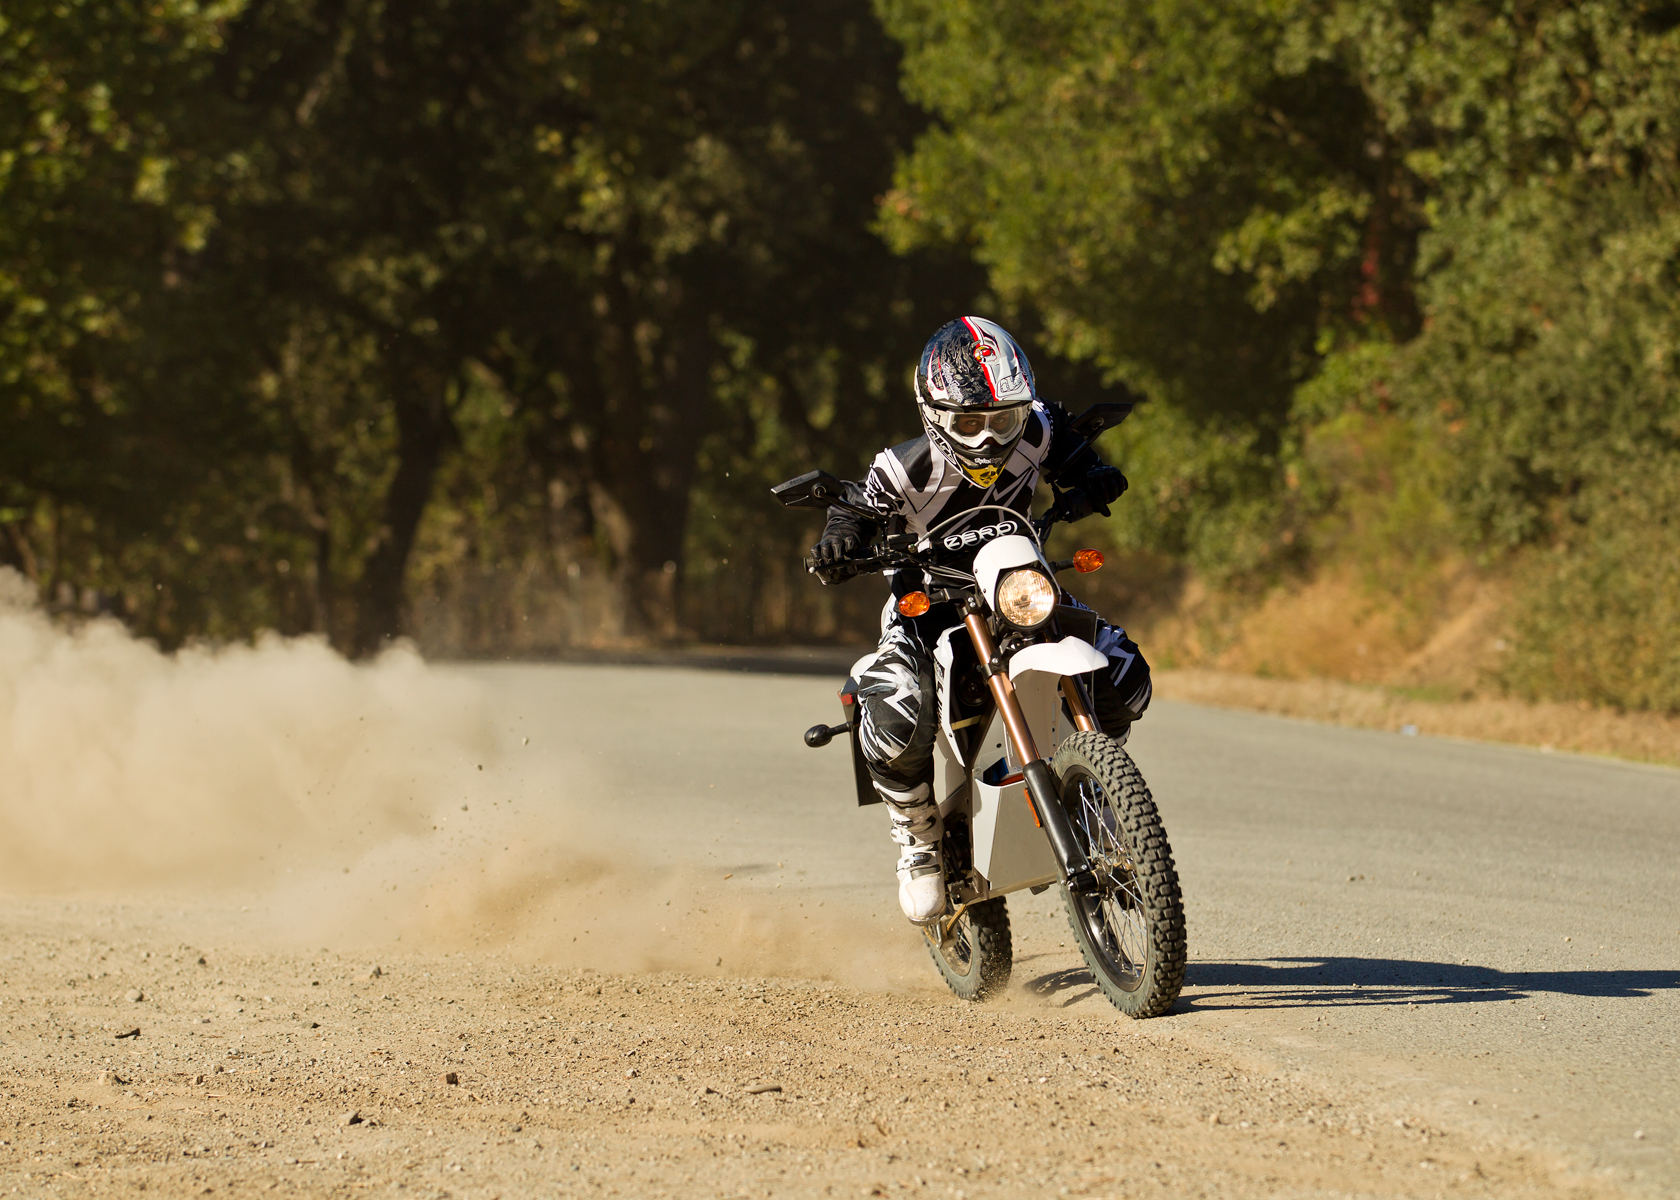 2012 Zero X Electric Motorcycle: Charging Down Dirt Road